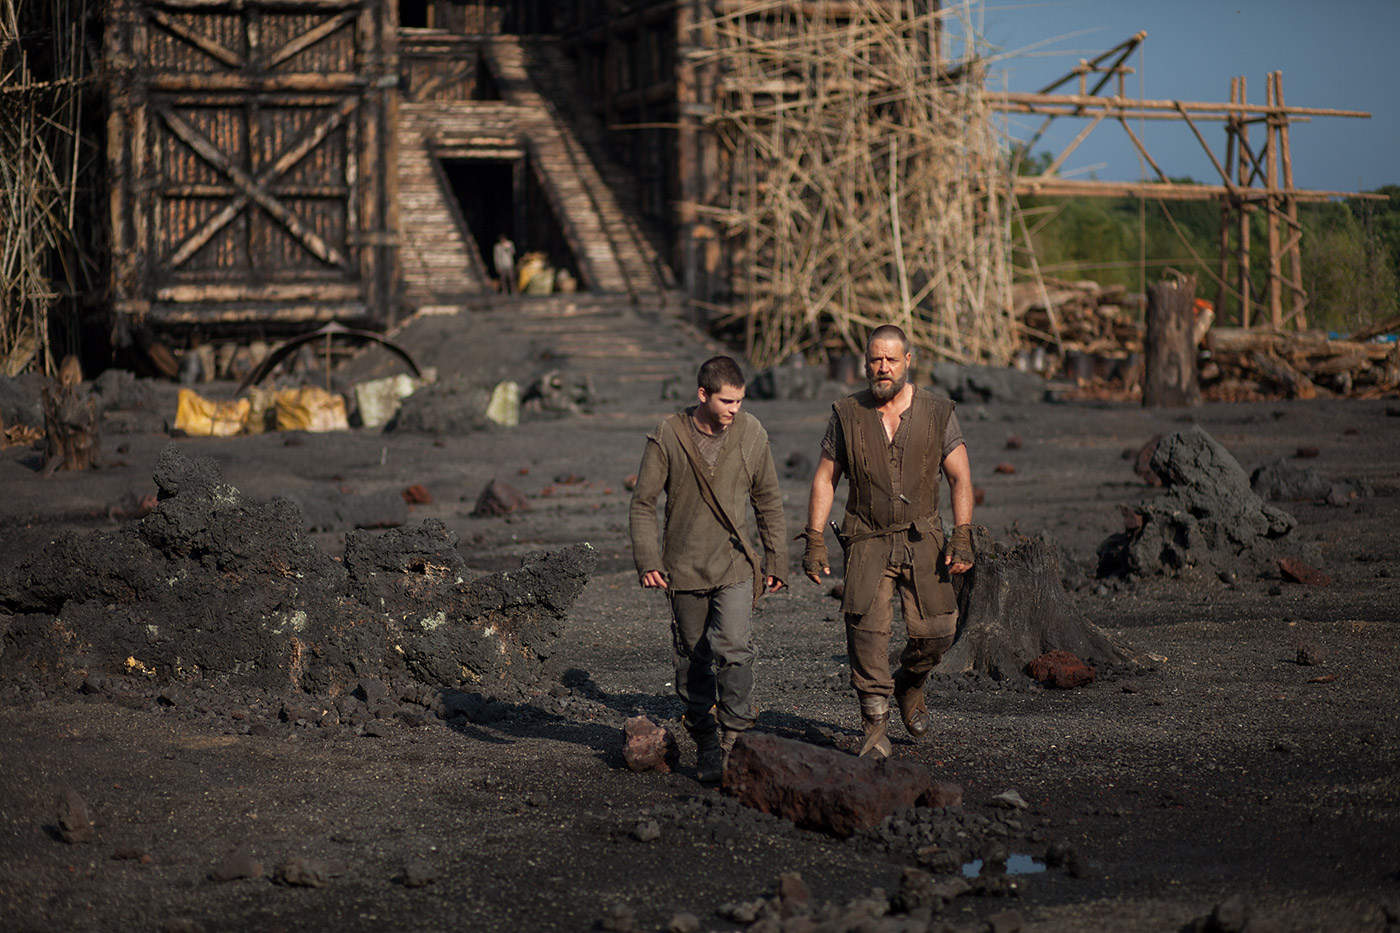 Logan Lerman and Russell Crowe in Noah. Source: noahmovie.com.